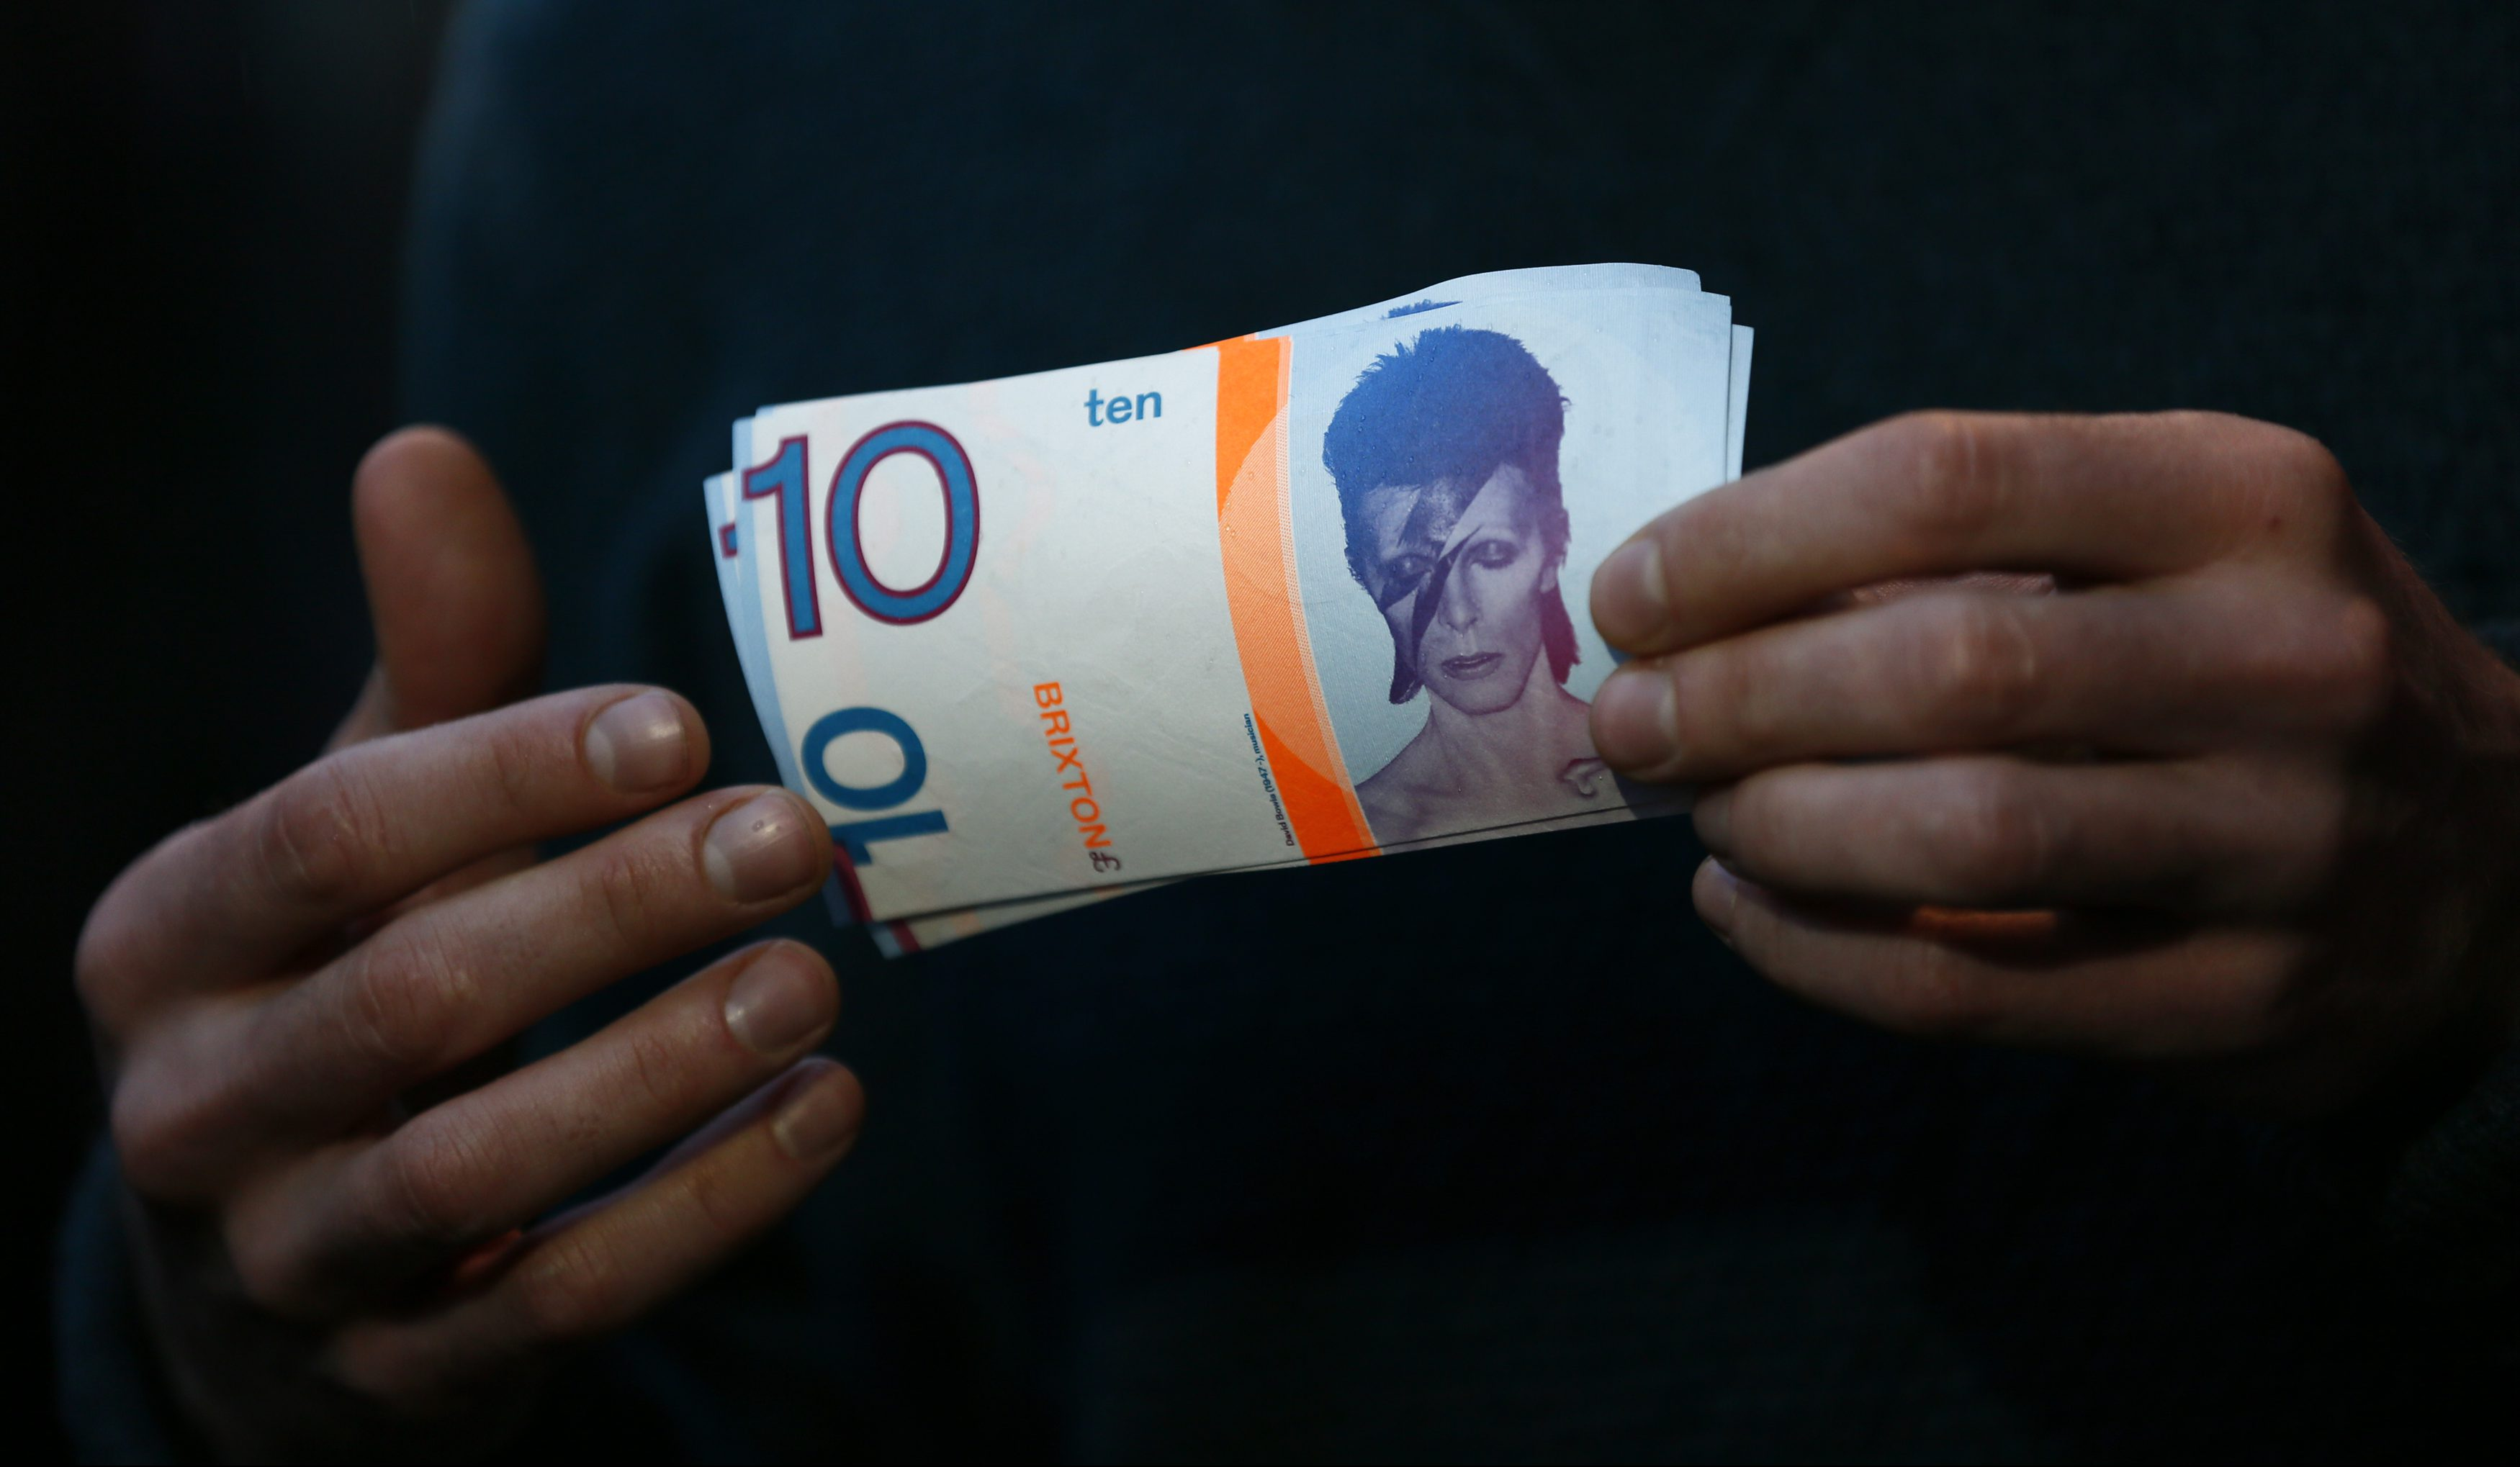 """A man holds a 10 Brixton Pounds note, which is adorned with an image of Brixton native David Bowie in Brixton, south London, January 11, 2016. David Bowie, a music legend who used daringly androgynous displays of sexuality and glittering costumes to frame legendary rock hits """"Ziggy Stardust"""" and """"Space Oddity"""", has died of cancer. The Brixton Pound is an alternative currency which can be used in businesses in the south London neighbourhood."""